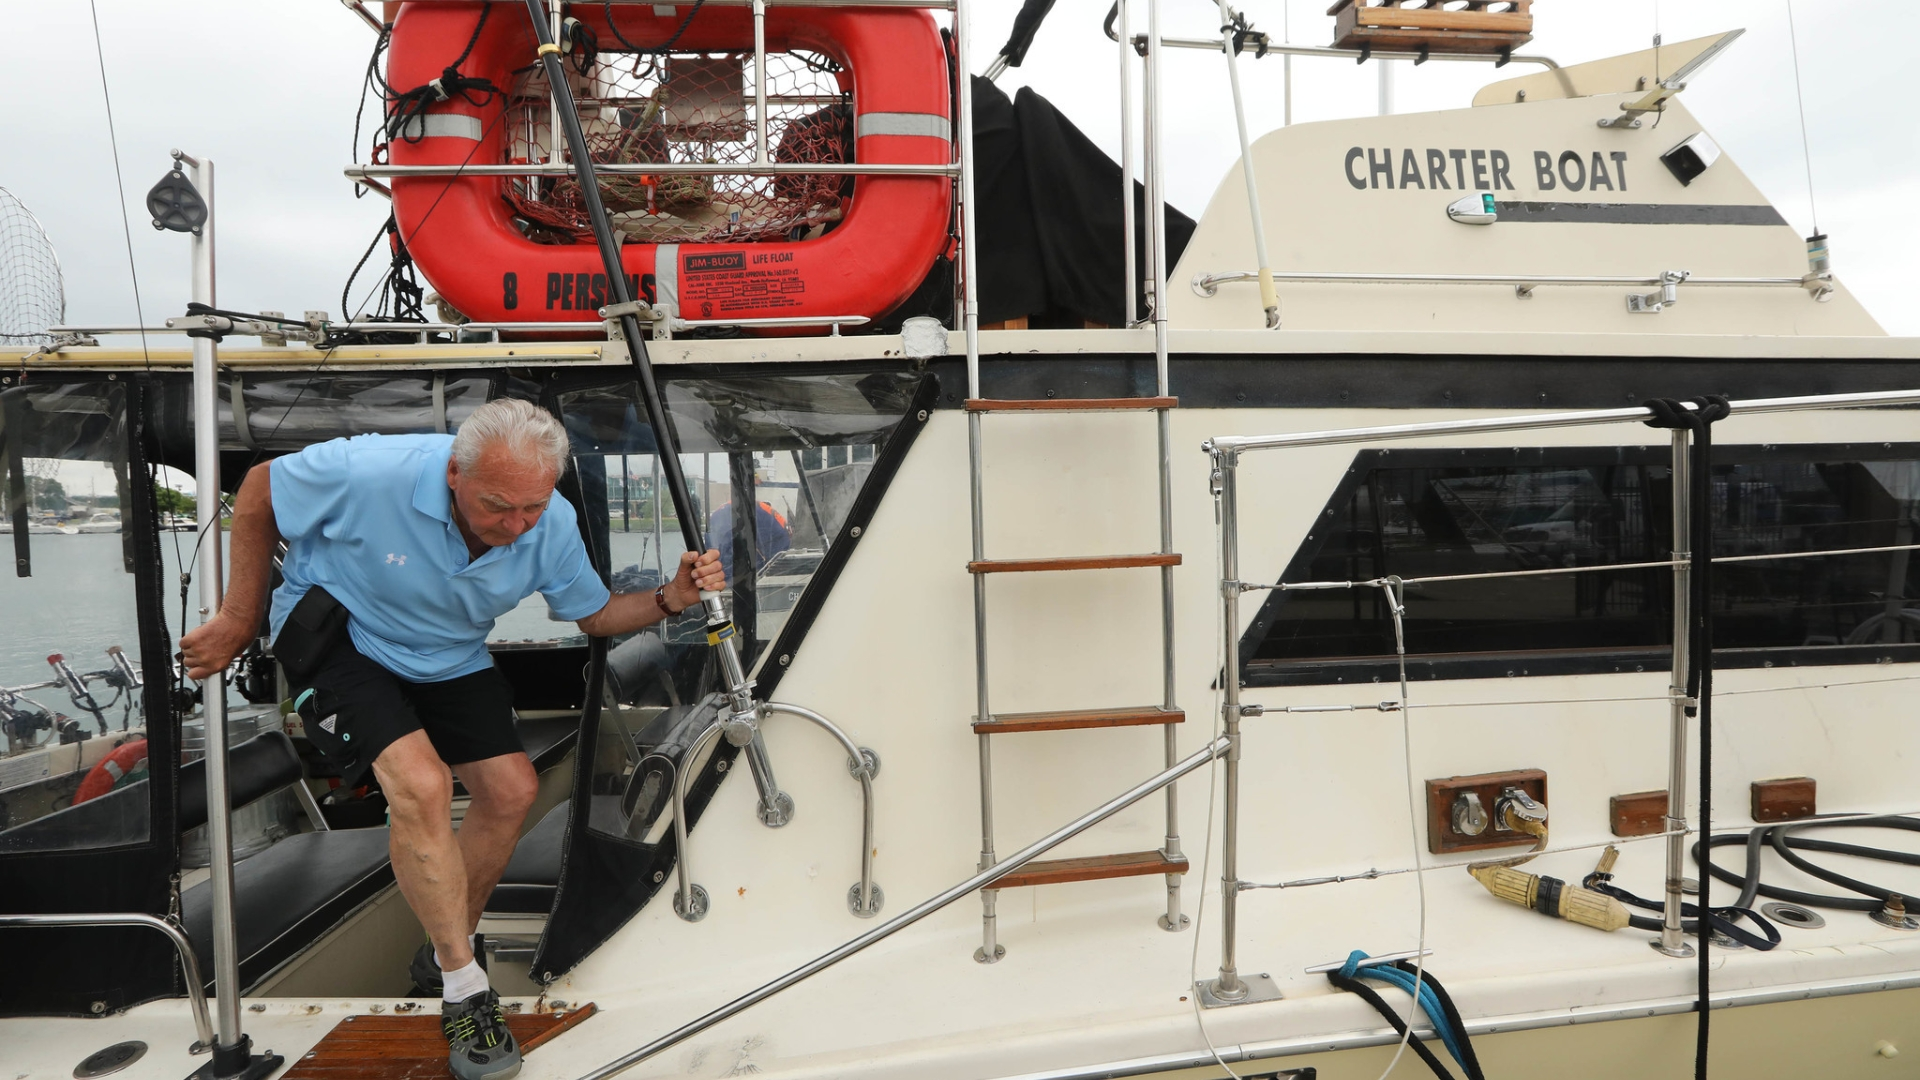 Coast Guard warns of illegal charter boats in Chicago: 'They